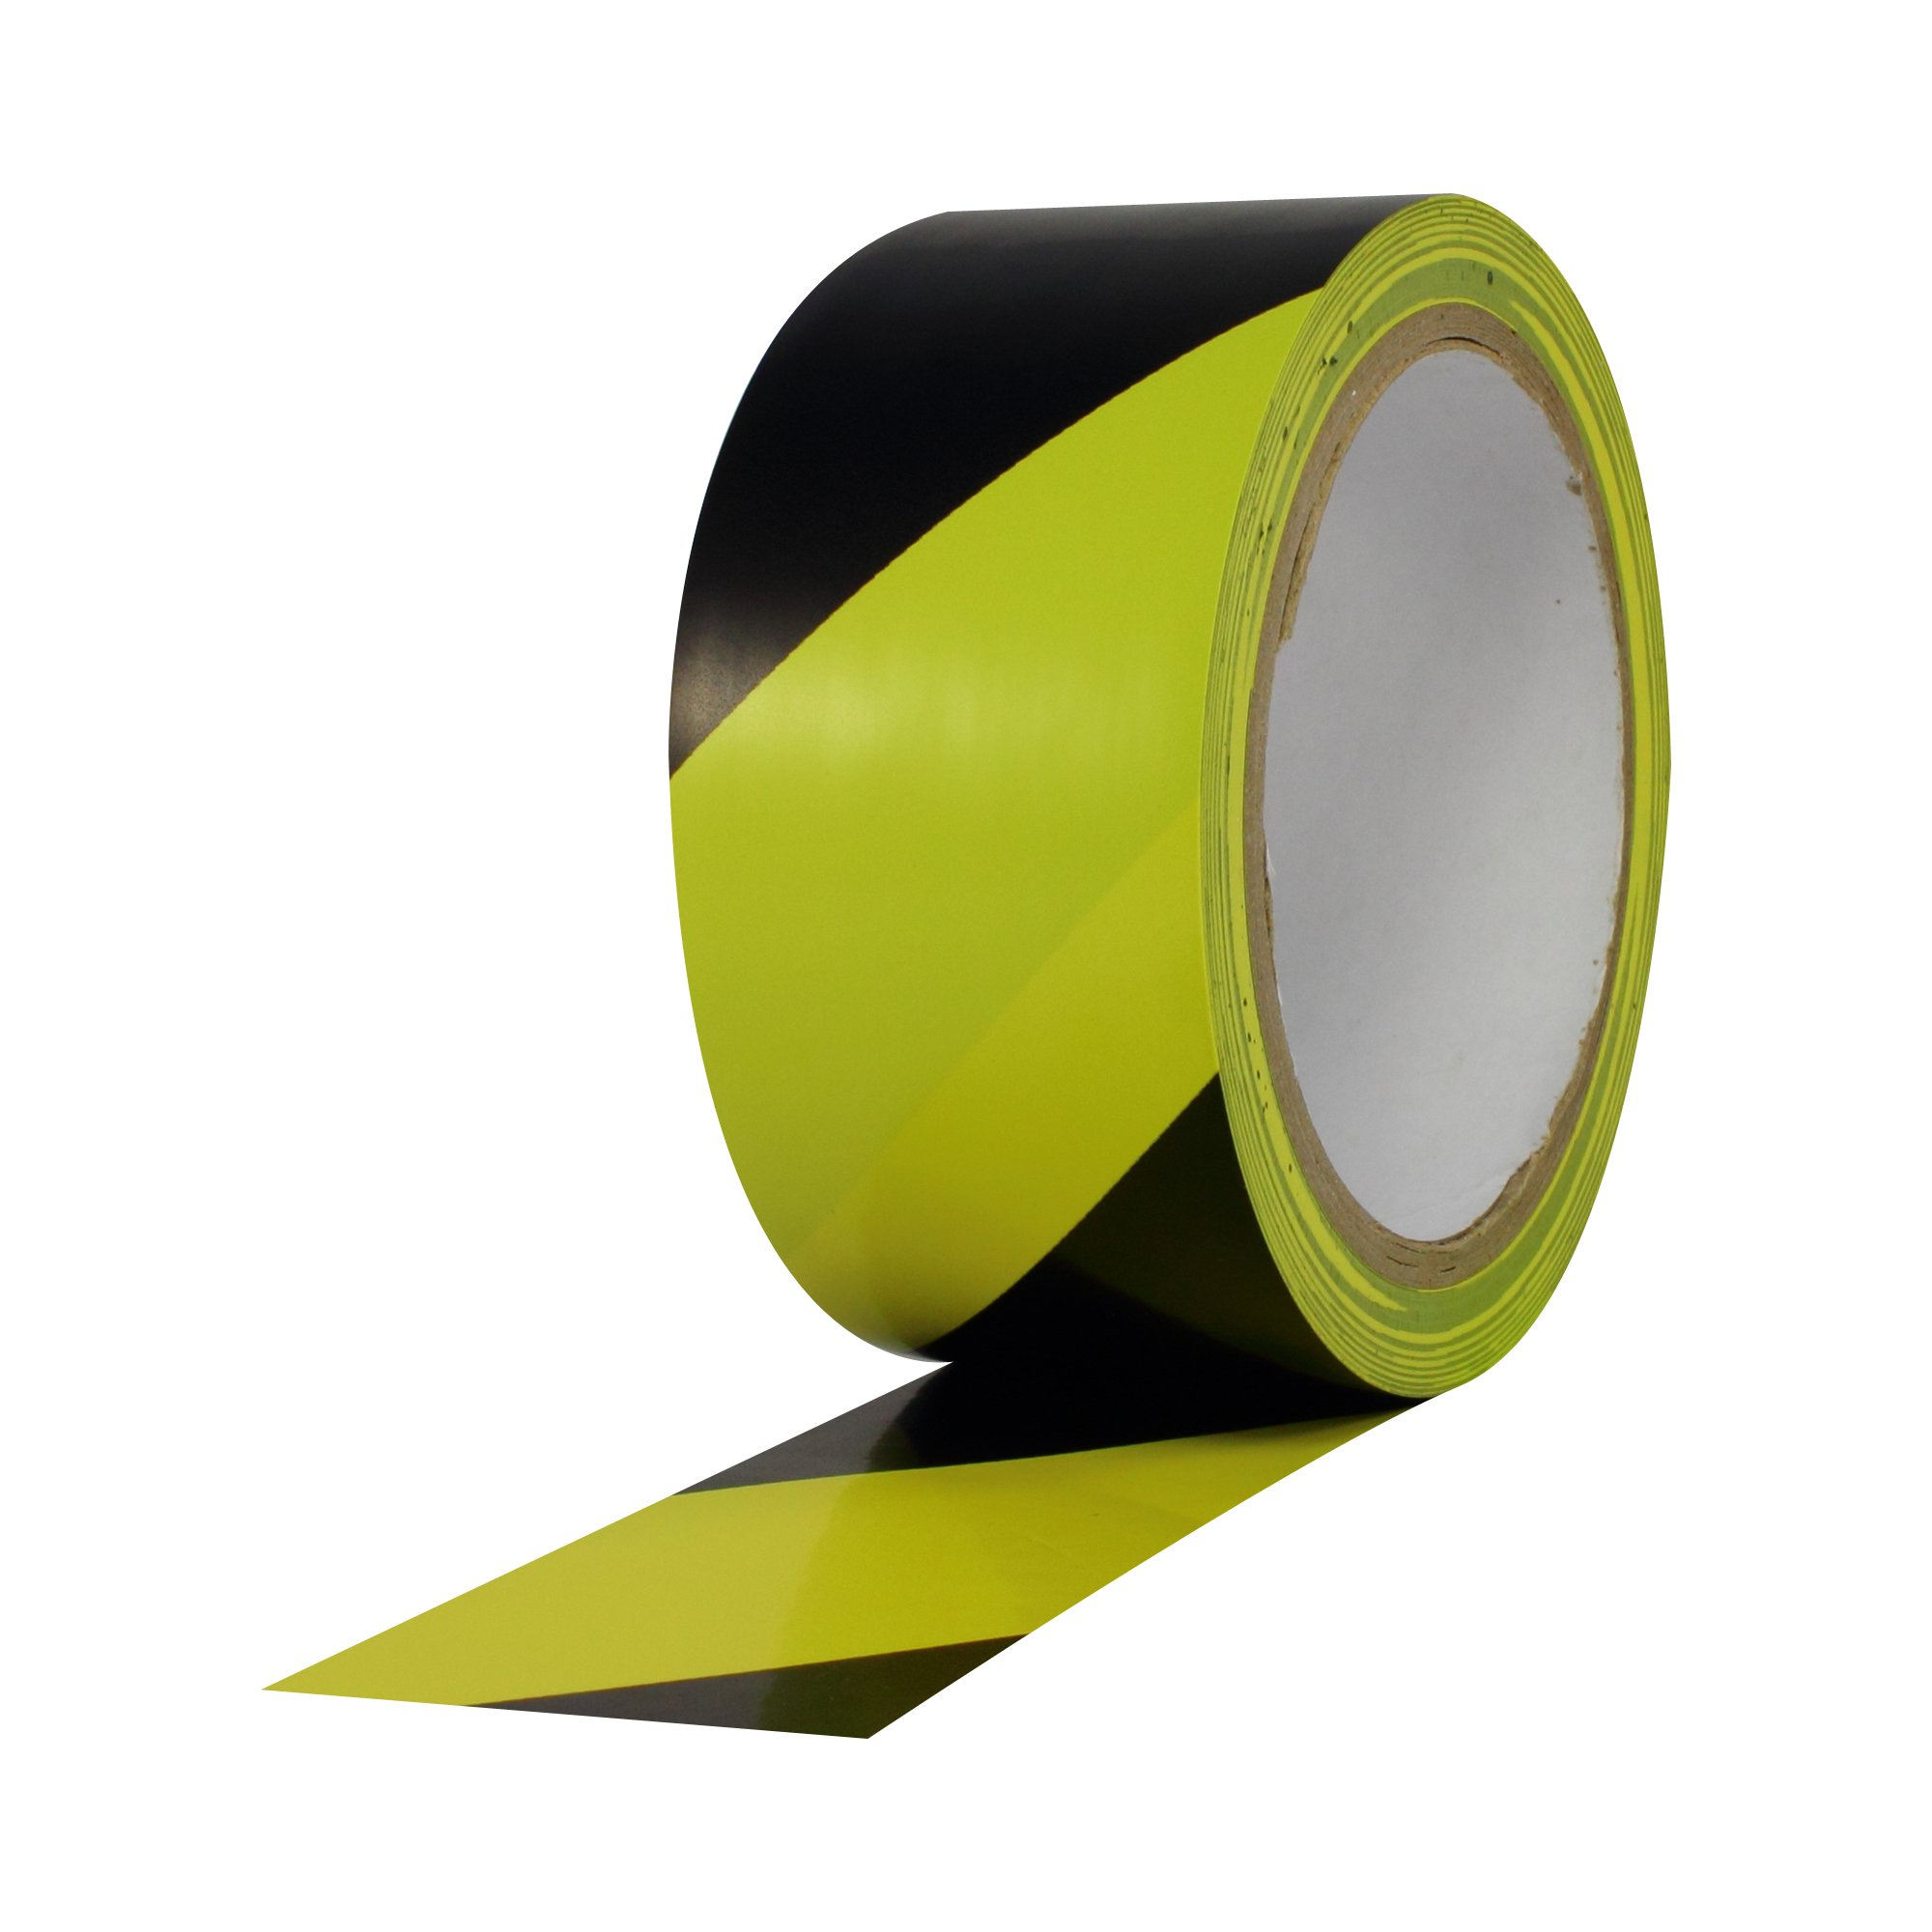 ProTapes Pro 48 PVC Vinyl Safety Stripes Tape, 18 yds Length x 3'' Width, 6 mils Thick, Black/Yellow (Pack of 1)